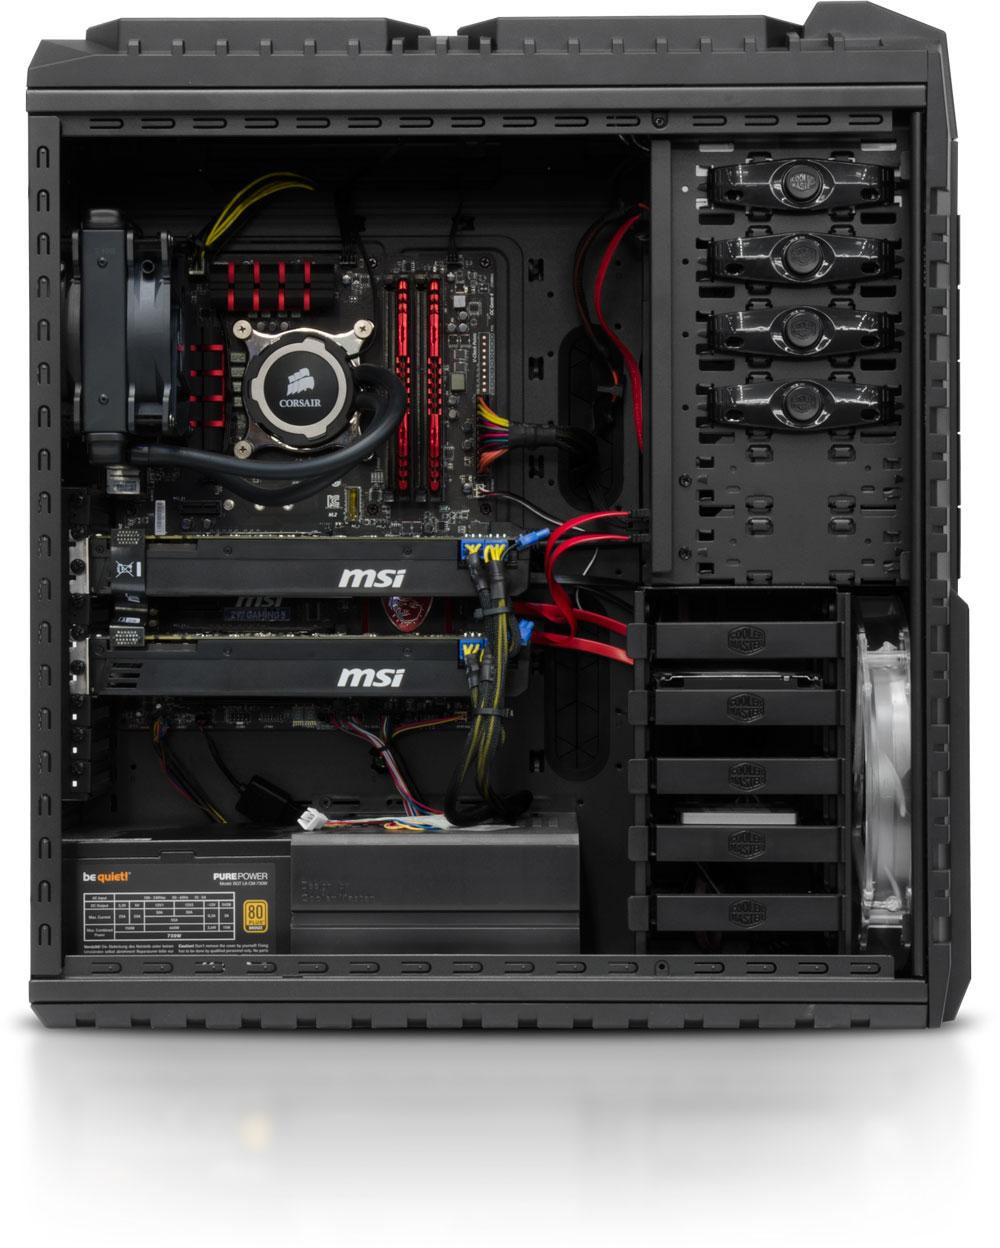 avis sur le pc gamer hornet mk2 de config. Black Bedroom Furniture Sets. Home Design Ideas